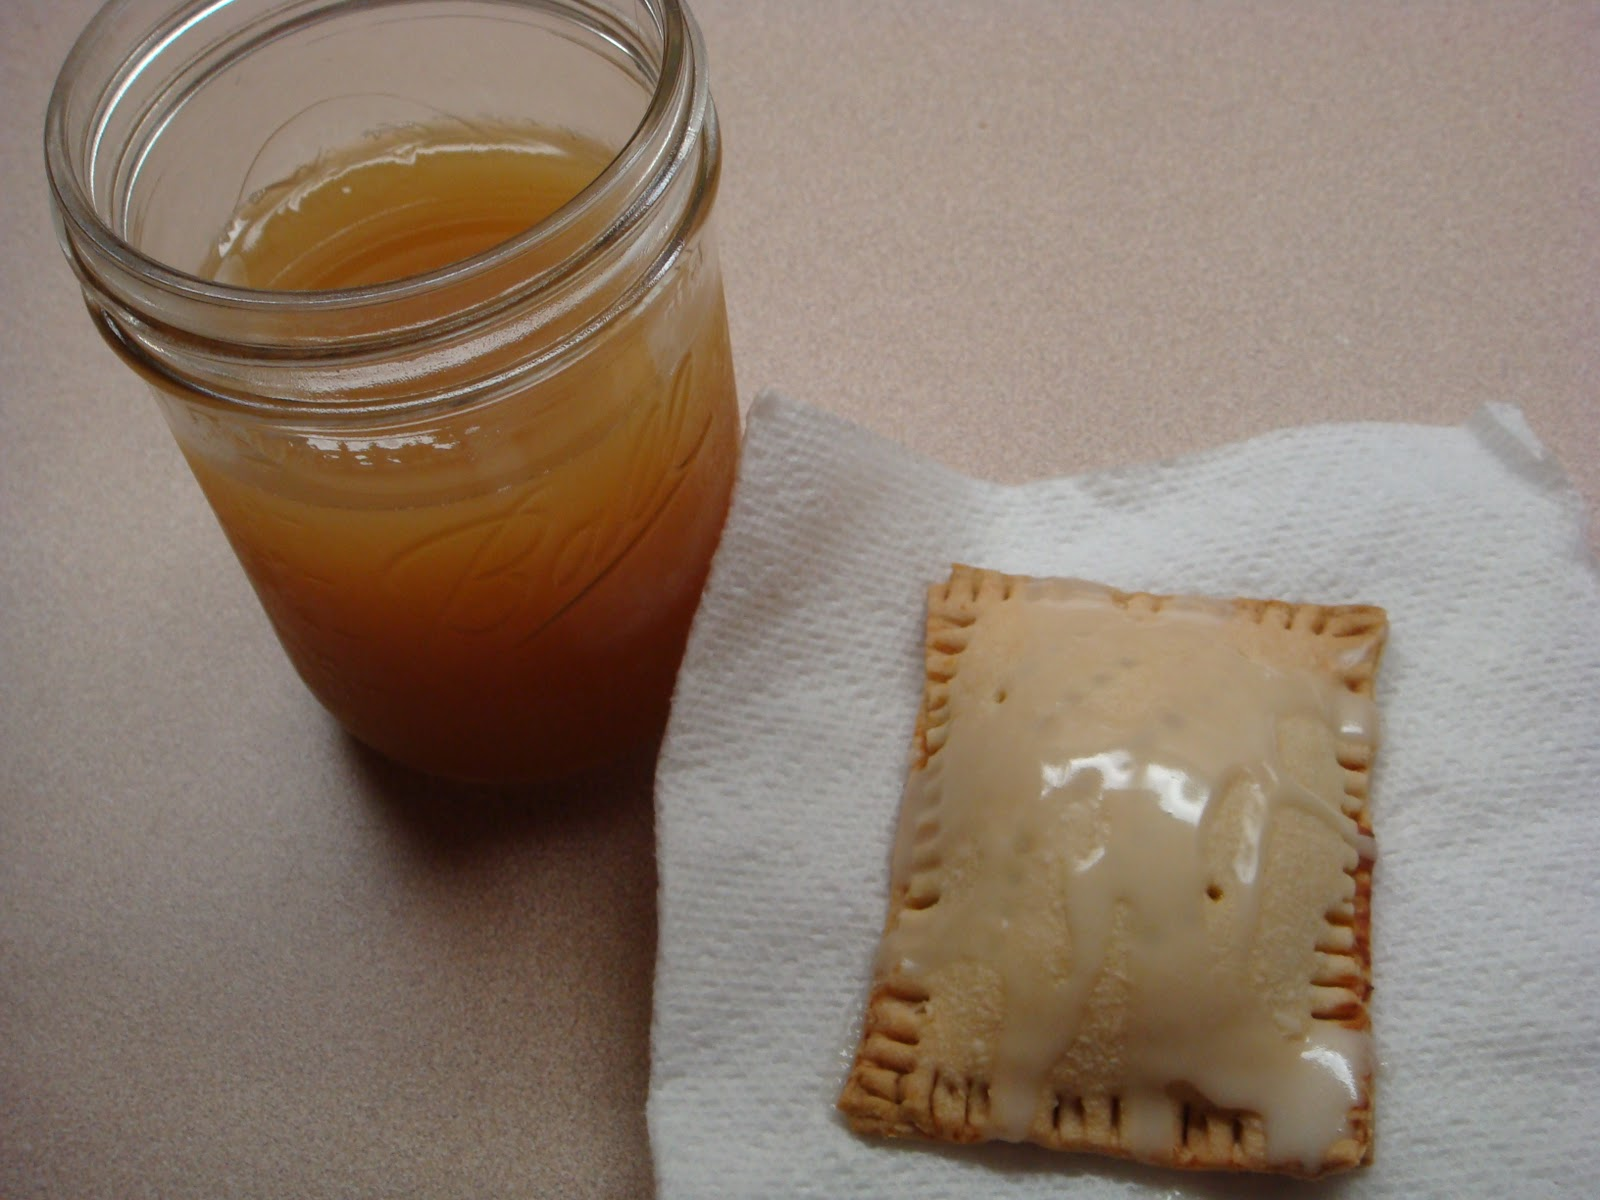 Mag-Pie's & more: Pumpkin Pie Pop Tarts with Maple Glaze